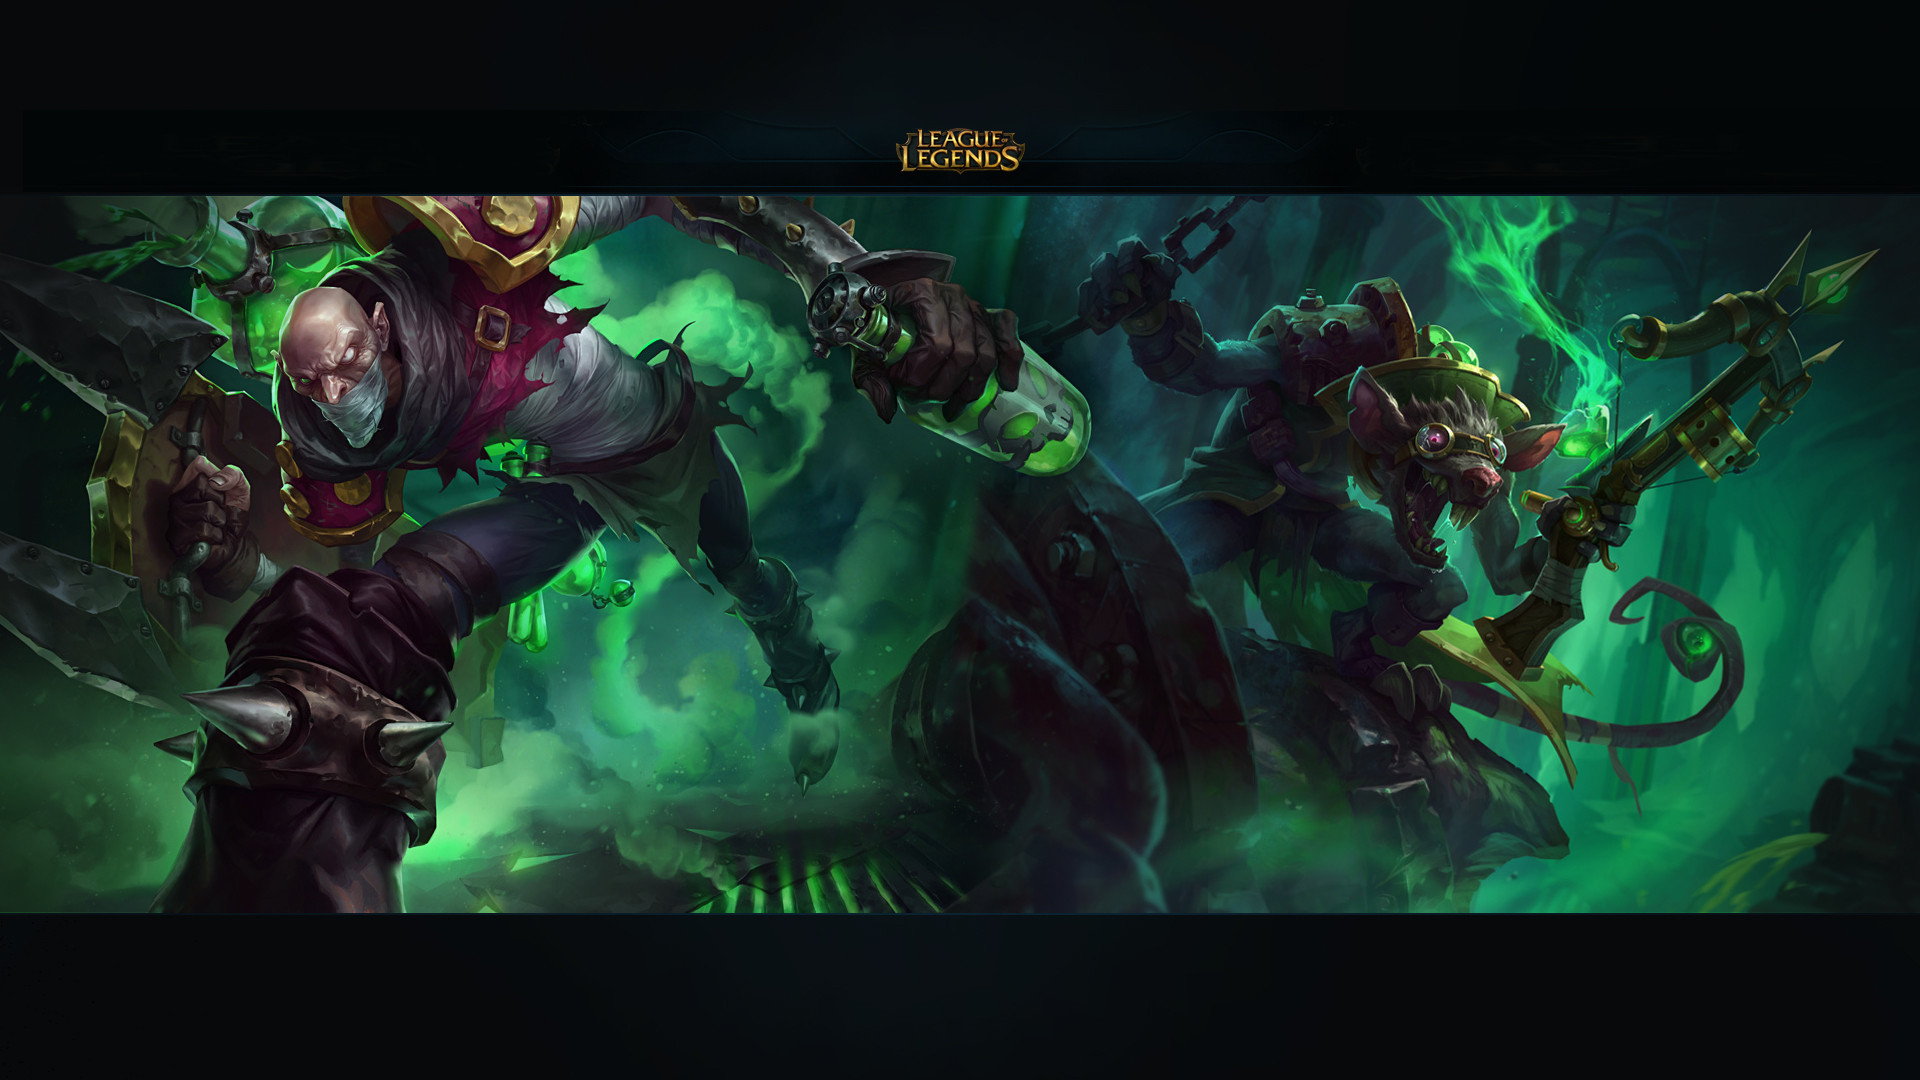 Toxic Duo Hd Wallpaper League Of Legends Twitch Animation